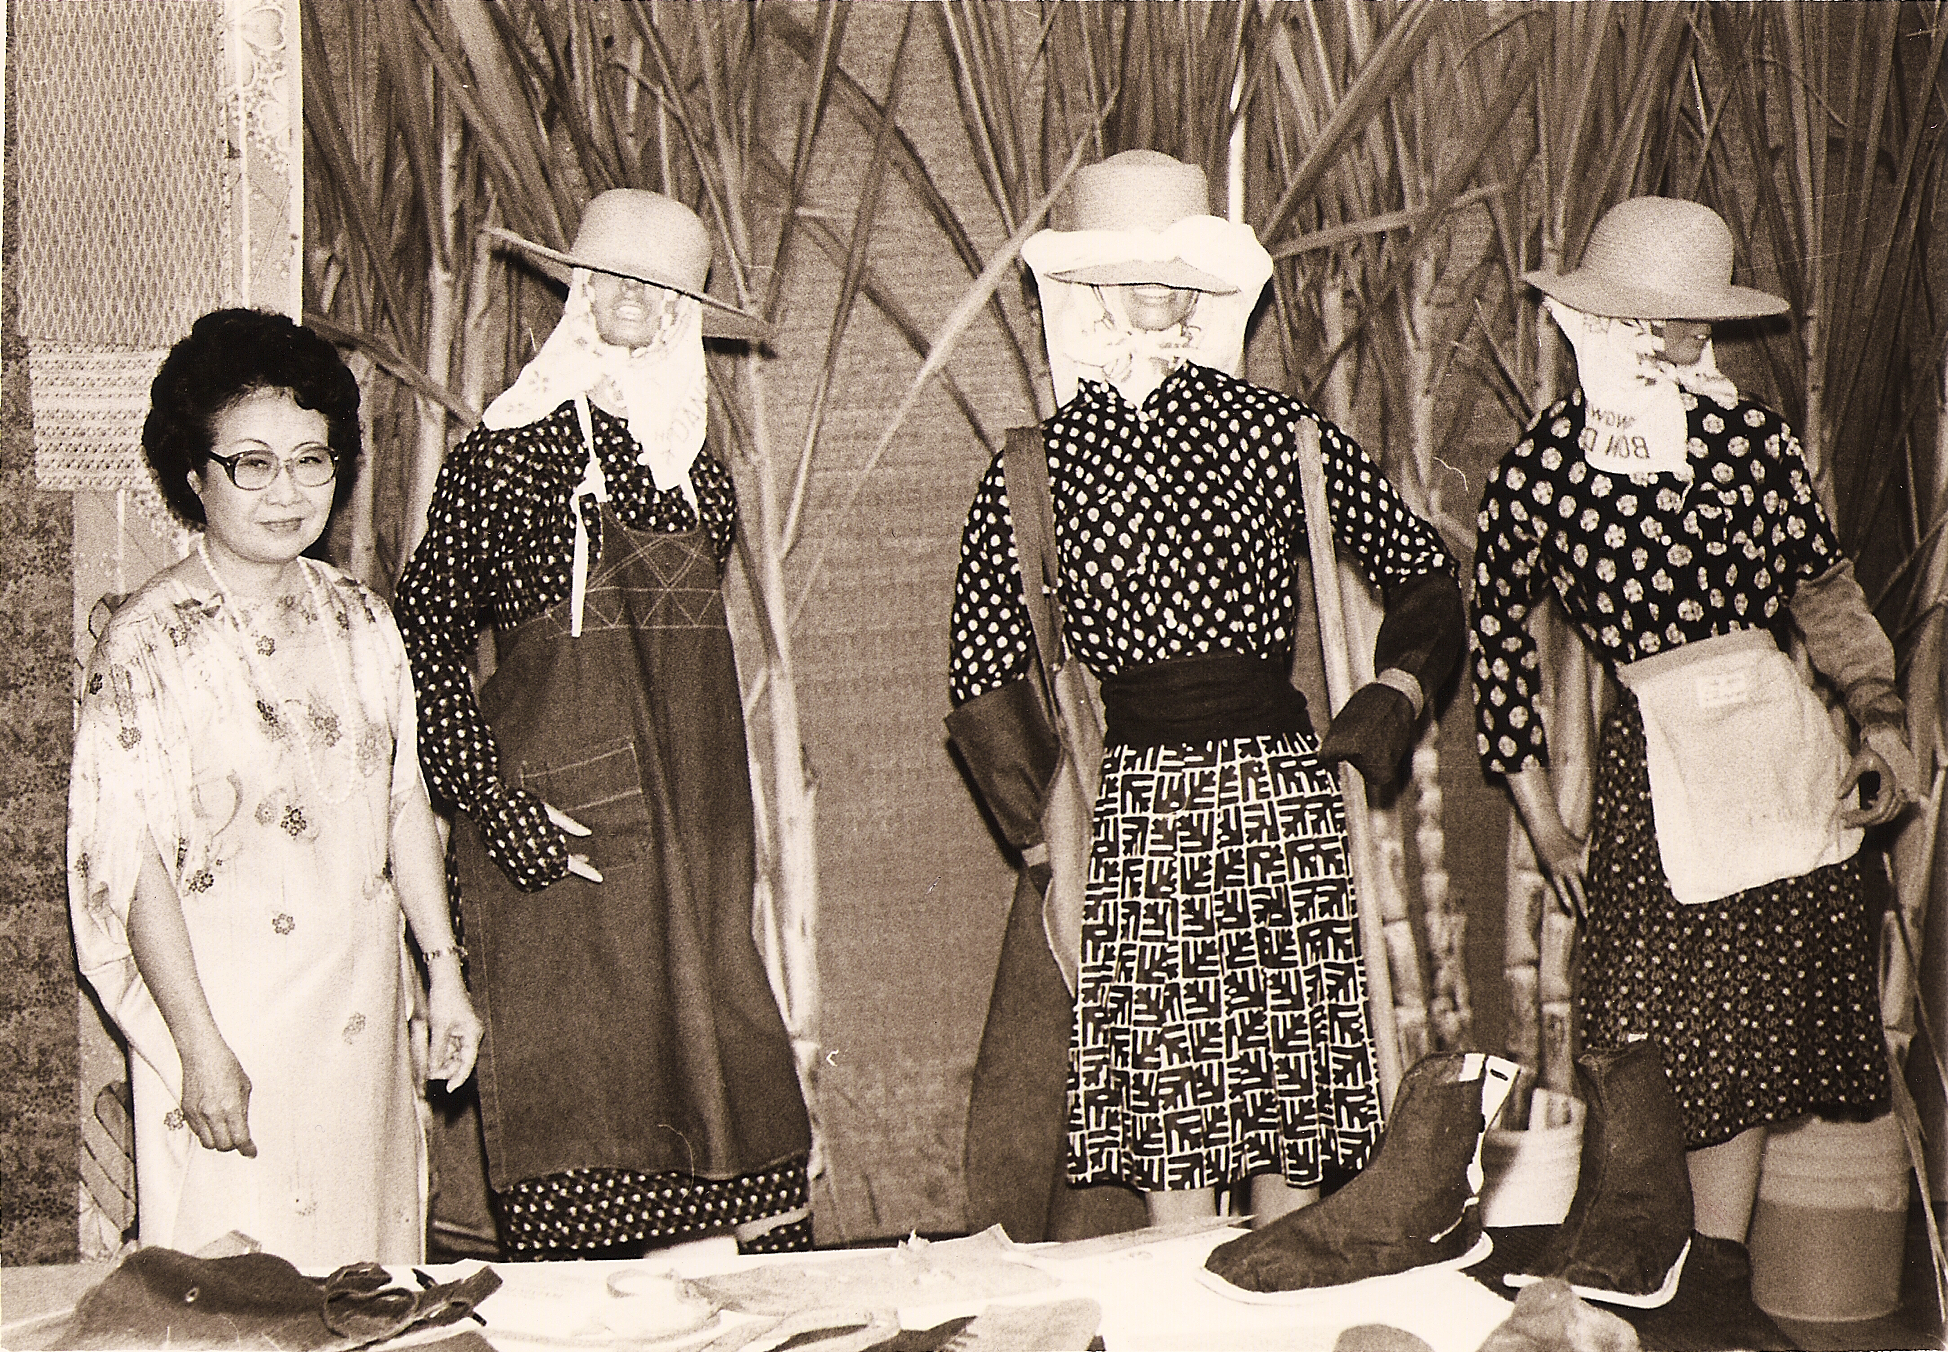 Barbara Kawakami with her collection of women's plantation clothing. (Herald archive photo)